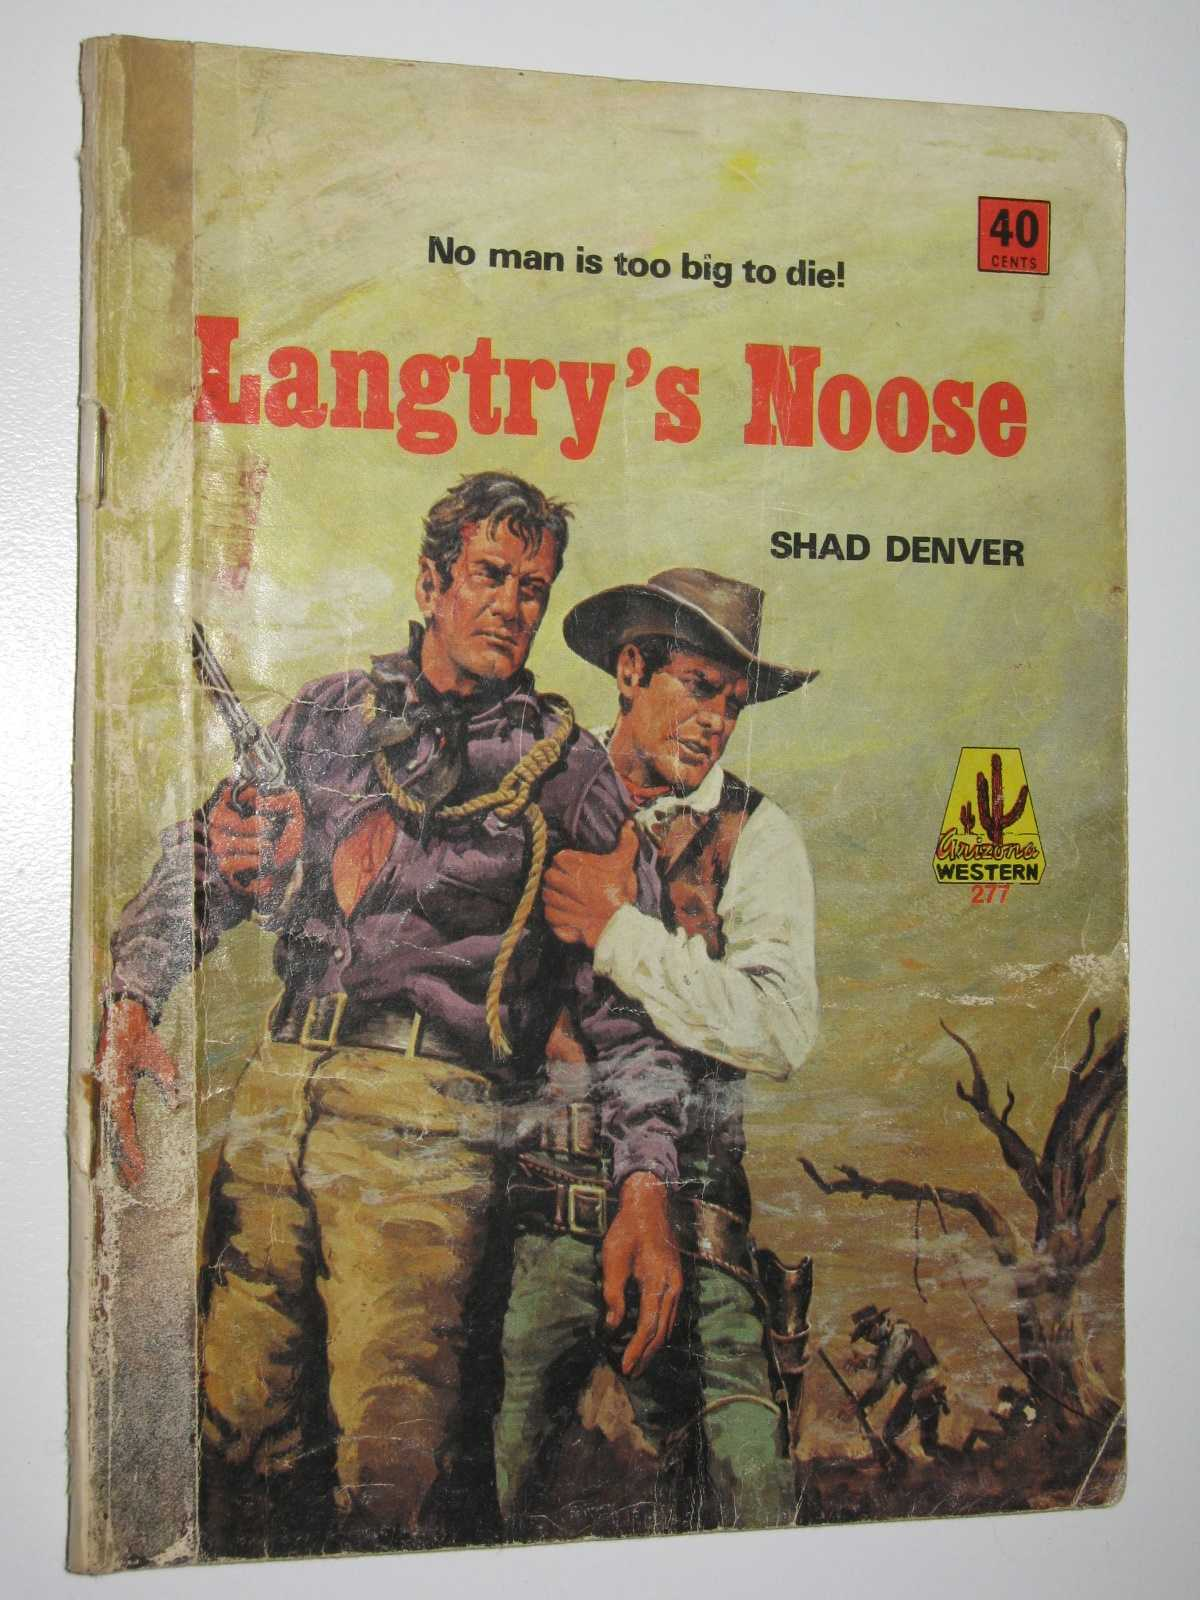 Image for Langtry's Noose - Arizona Western Series #277